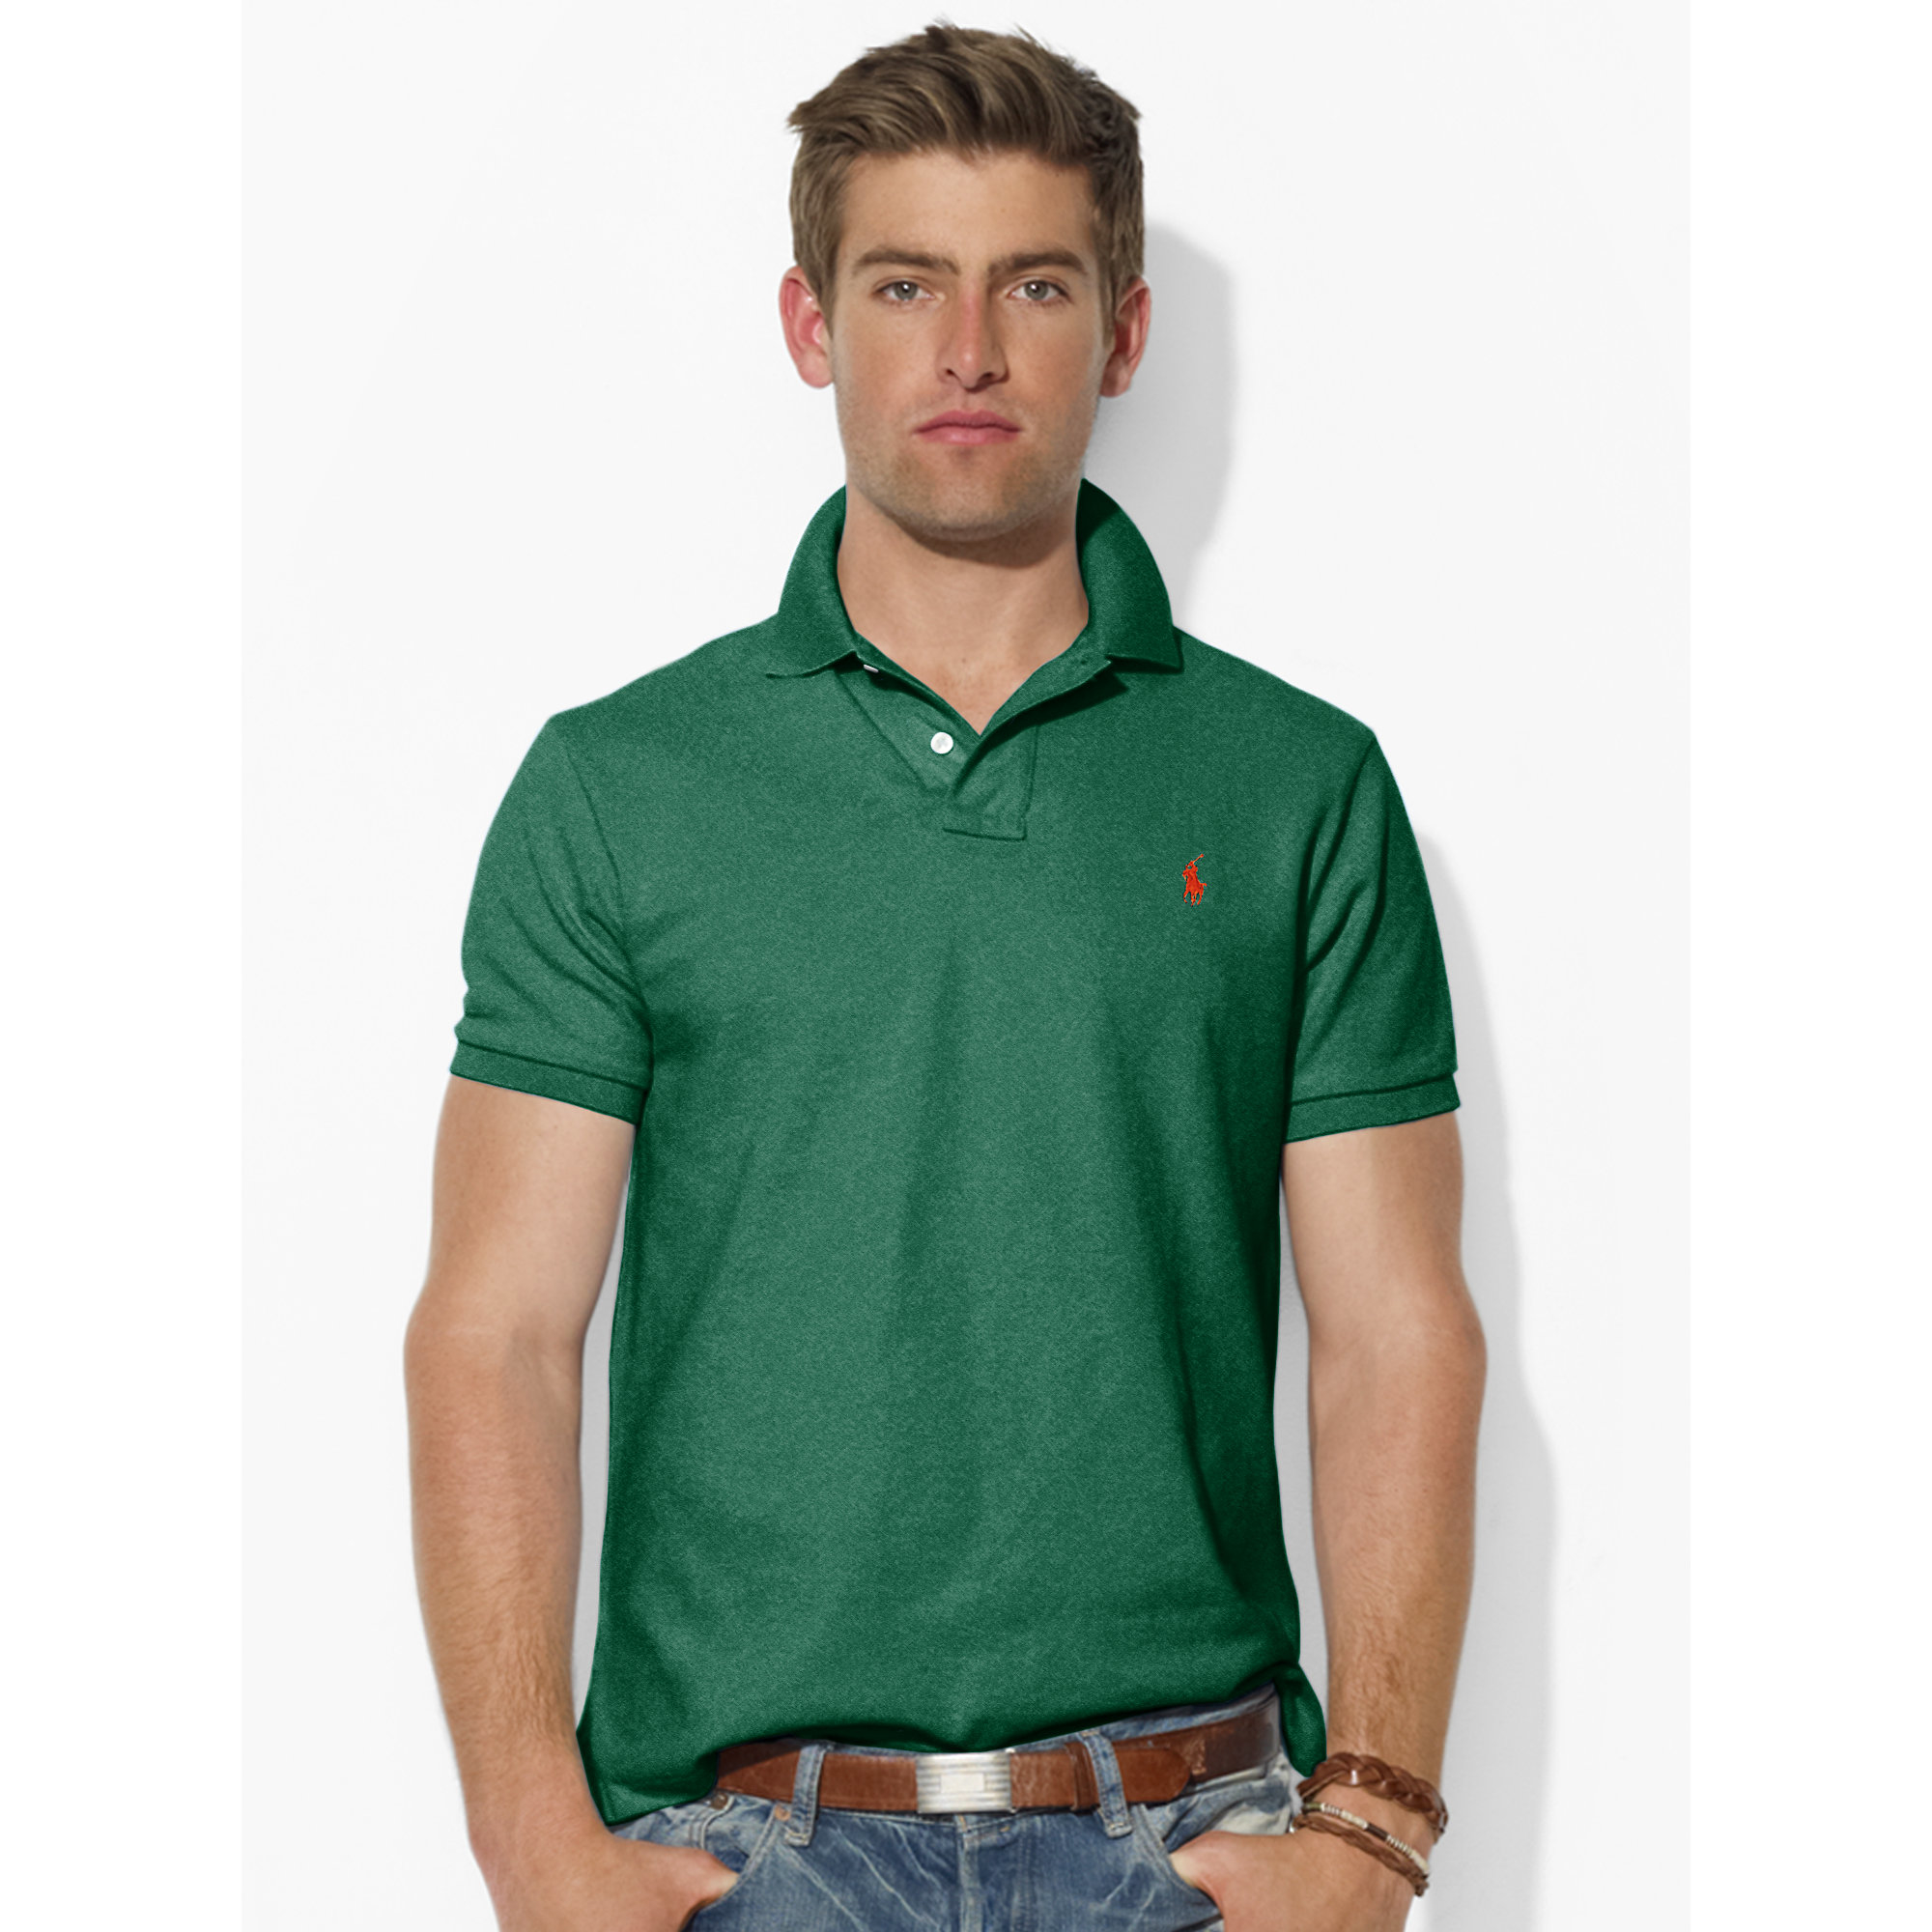 Lyst polo ralph lauren custom fit mesh polo shirt in for Custom tailored polo shirts